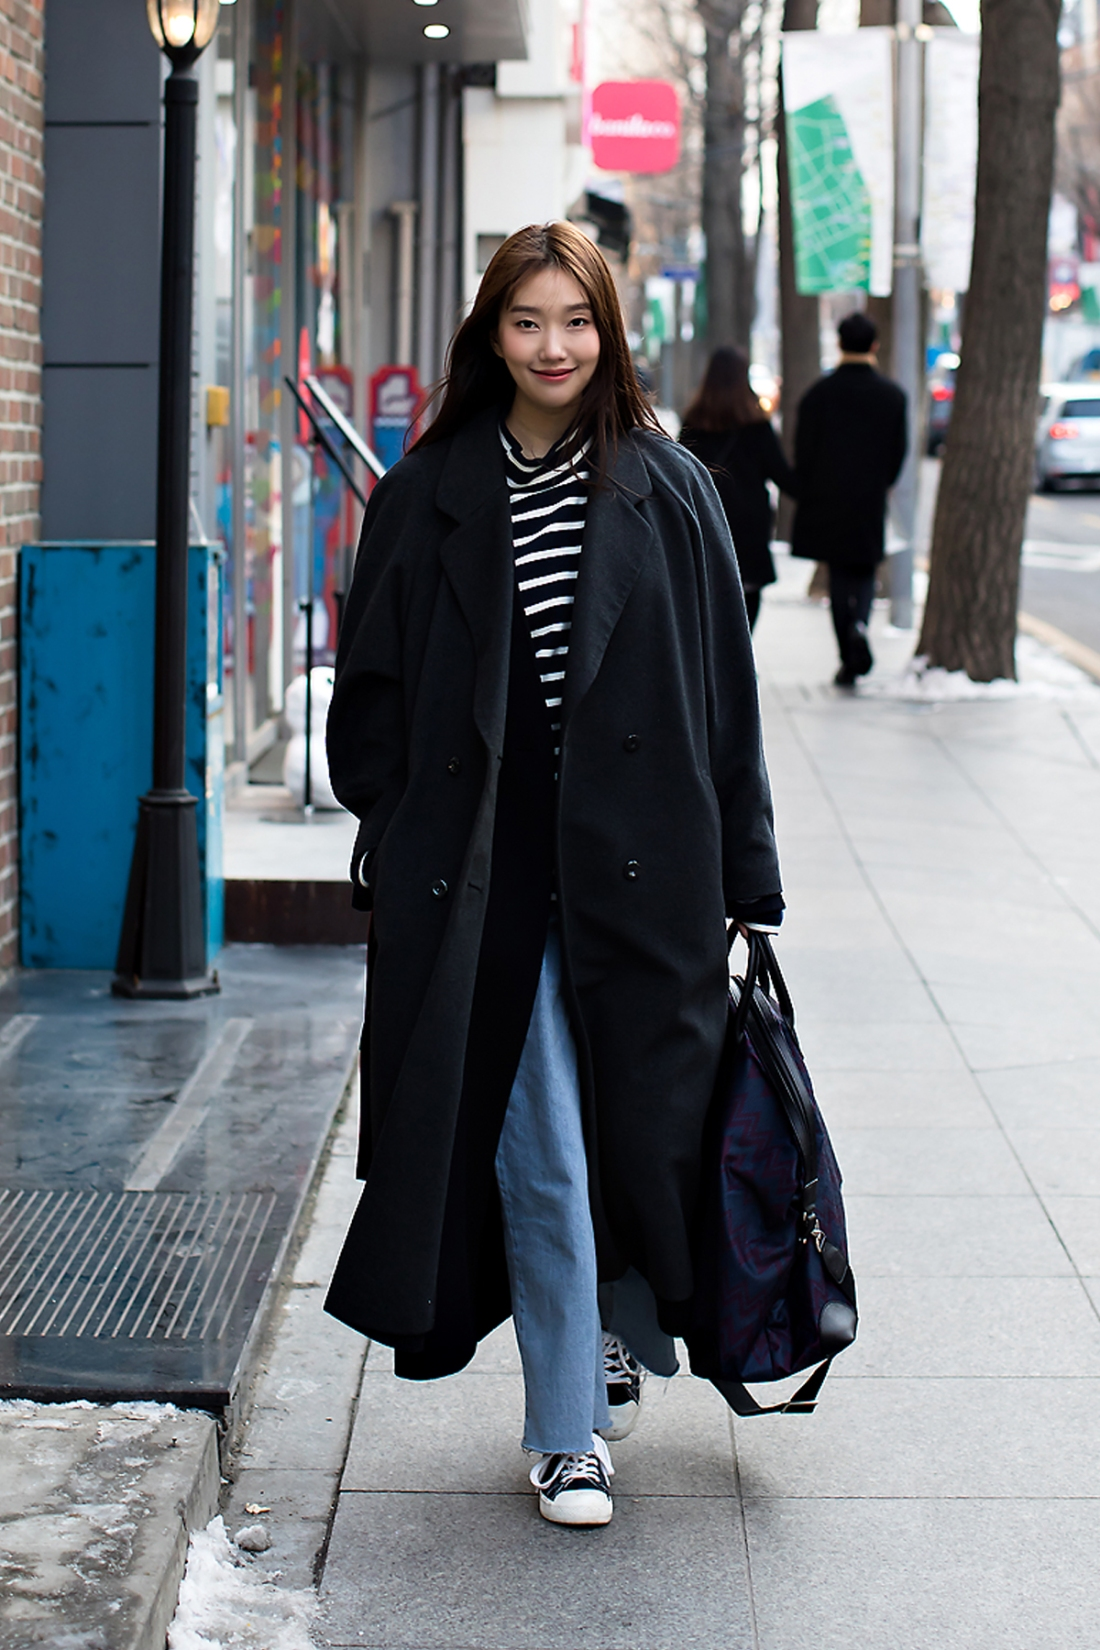 ham-soyoung-street-fashion-2017-in-seoul